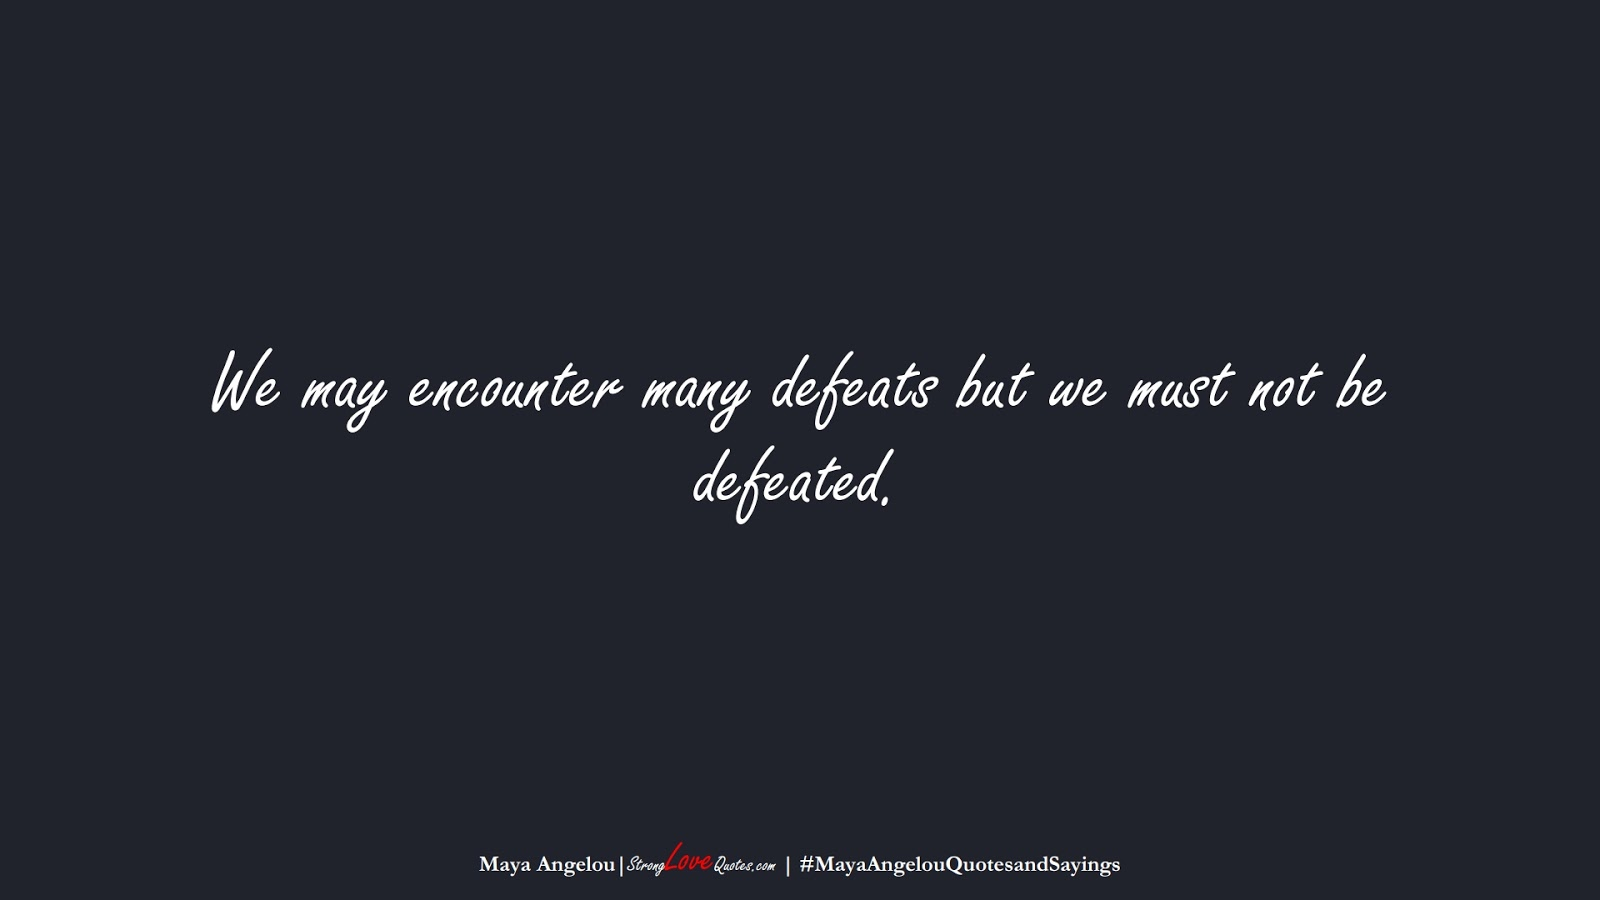 We may encounter many defeats but we must not be defeated. (Maya Angelou);  #MayaAngelouQuotesandSayings